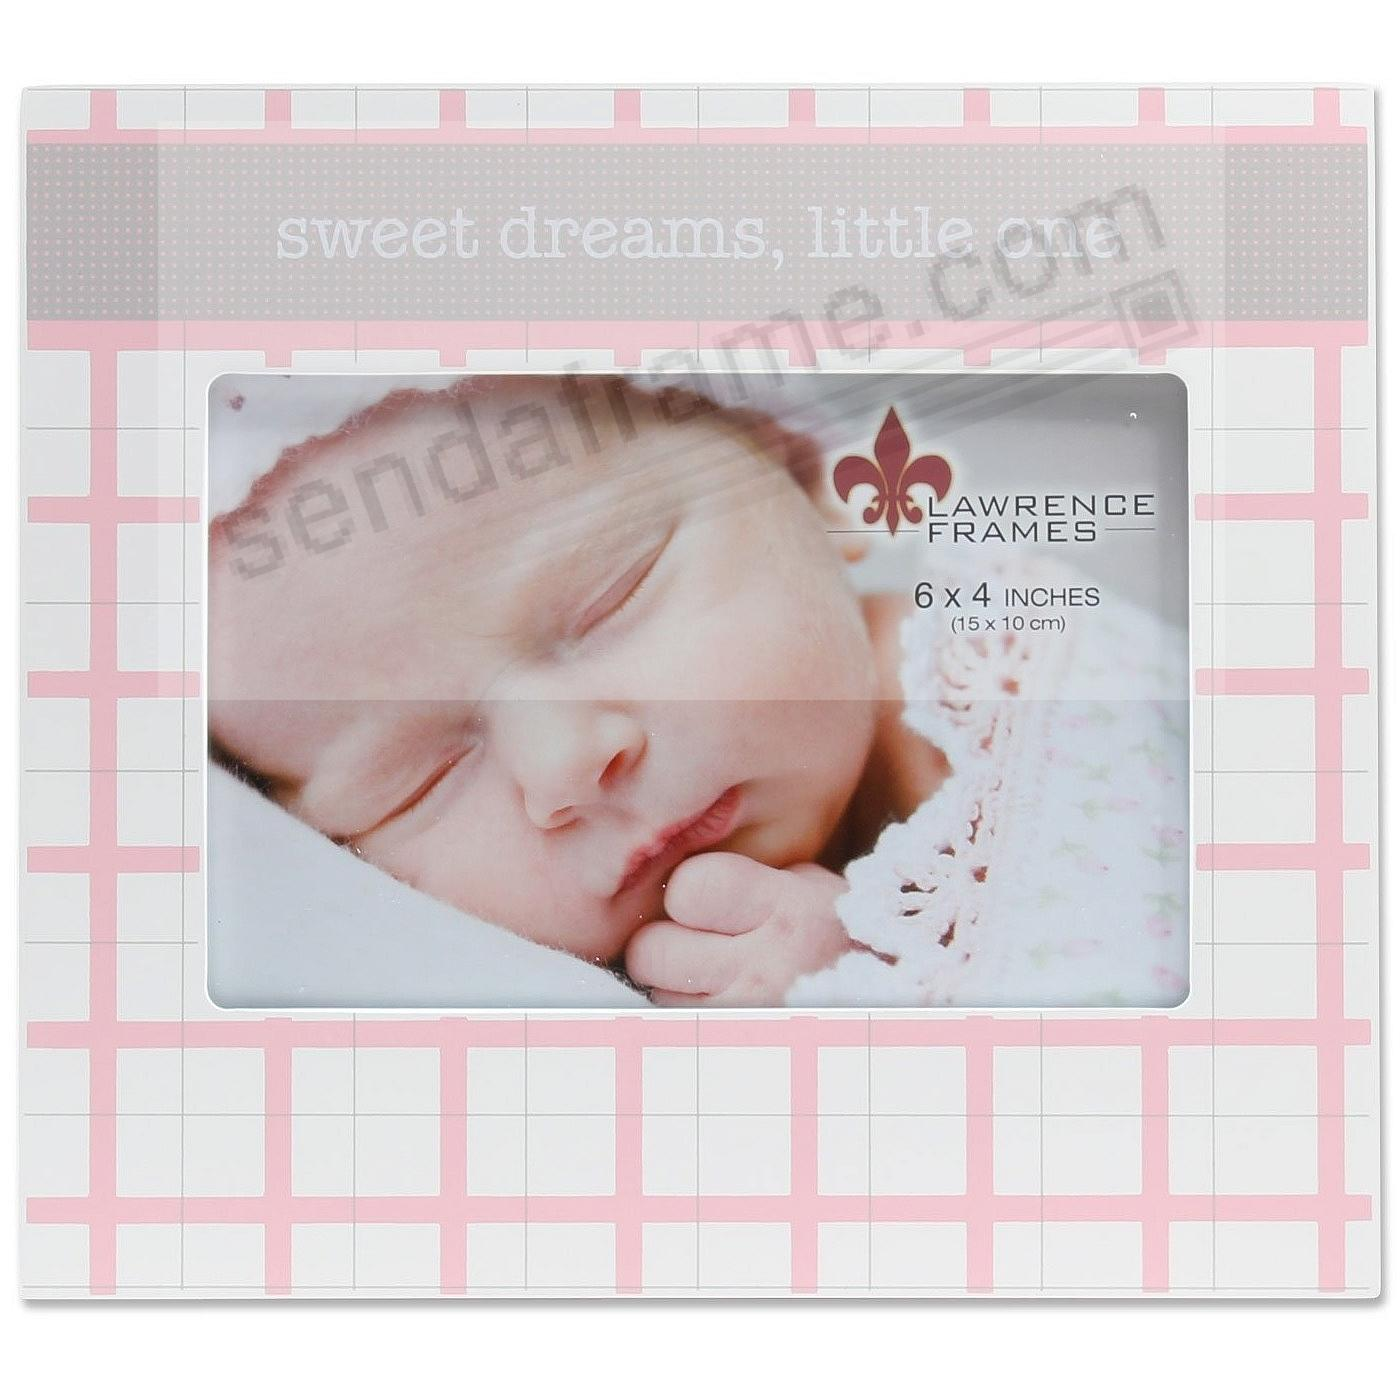 SWEET DREAMS LITTLE ONE Baby Pink 6x4 frame by Lawrence®